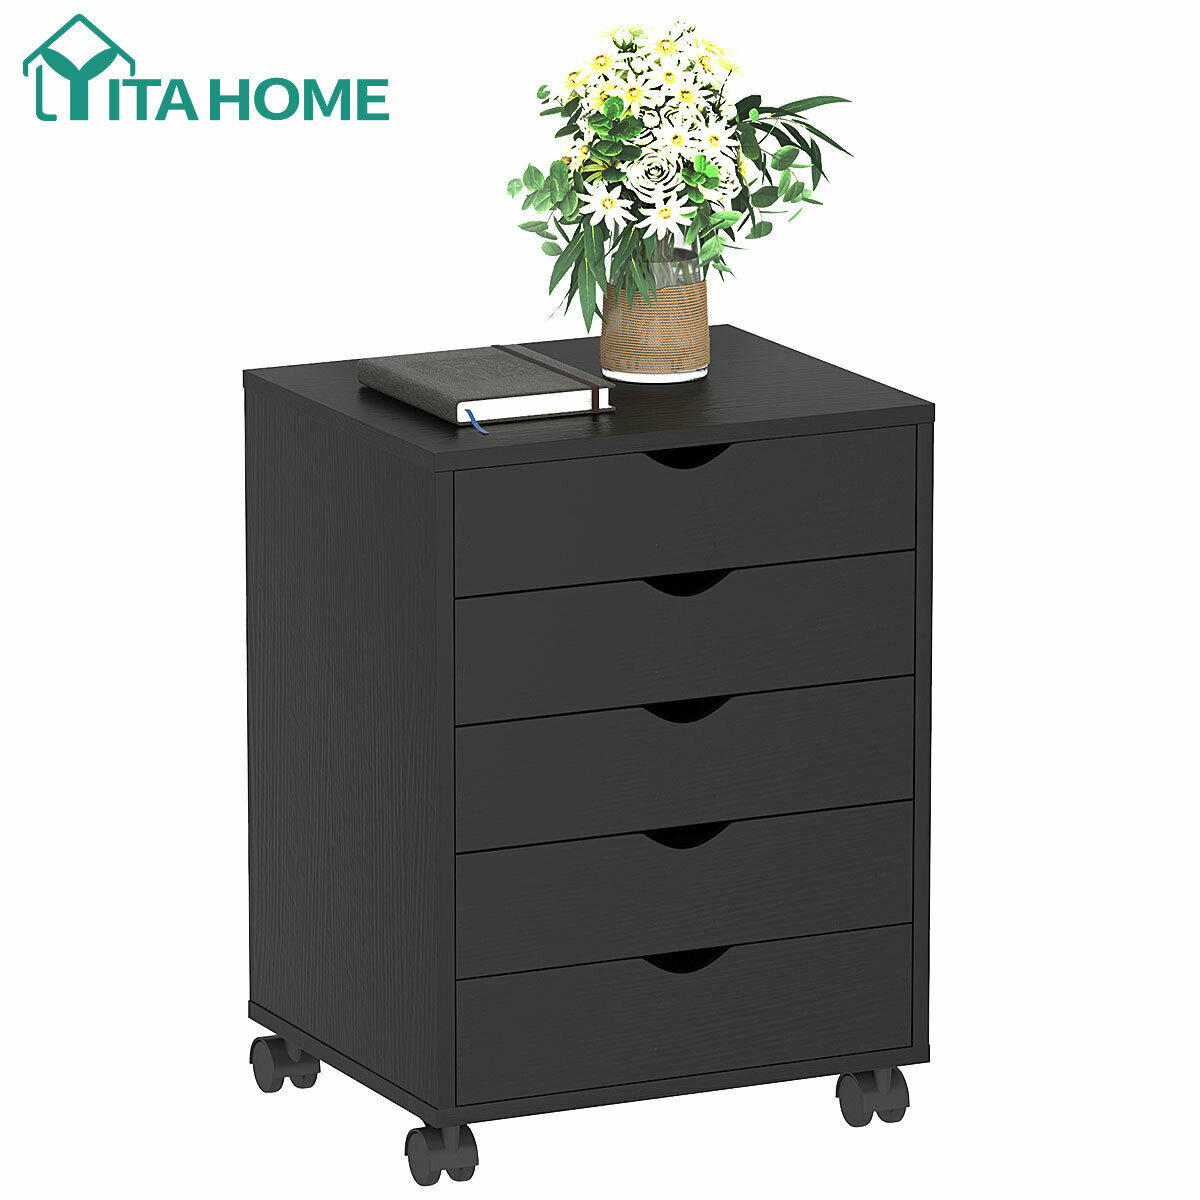 Wood Filing Storage Cart Organizer with Lockable Casters for Home and Office Black SUPER DEAL 5 Drawer Mobile Cabinet